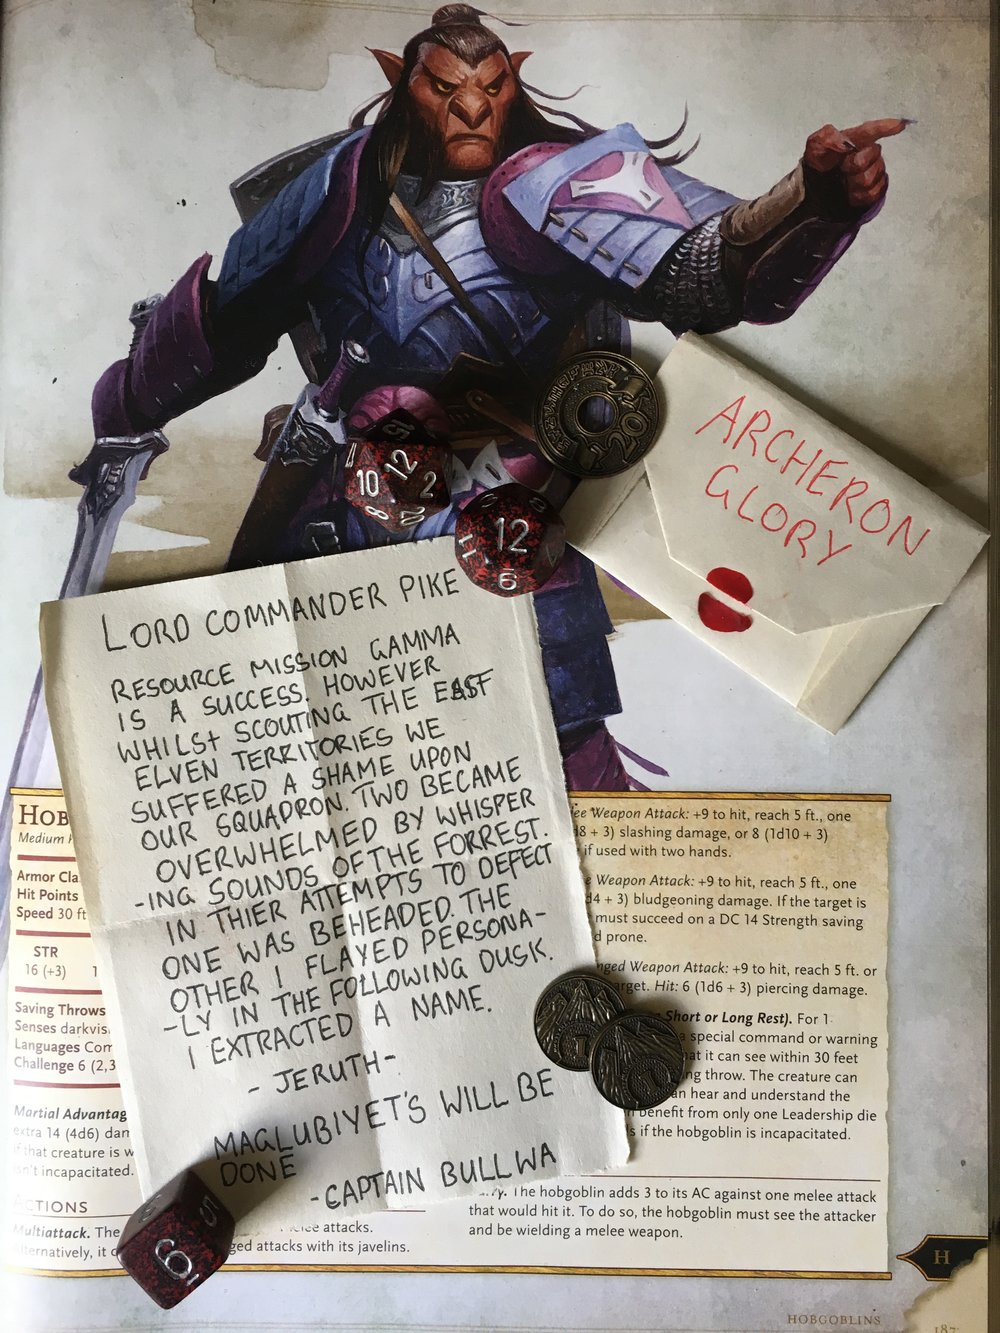 Poor Captain Bullwa. His squadron defeated, he fled into the night, only to be caught by a vicious mockery (Bard Spell) causing him to die of shame.